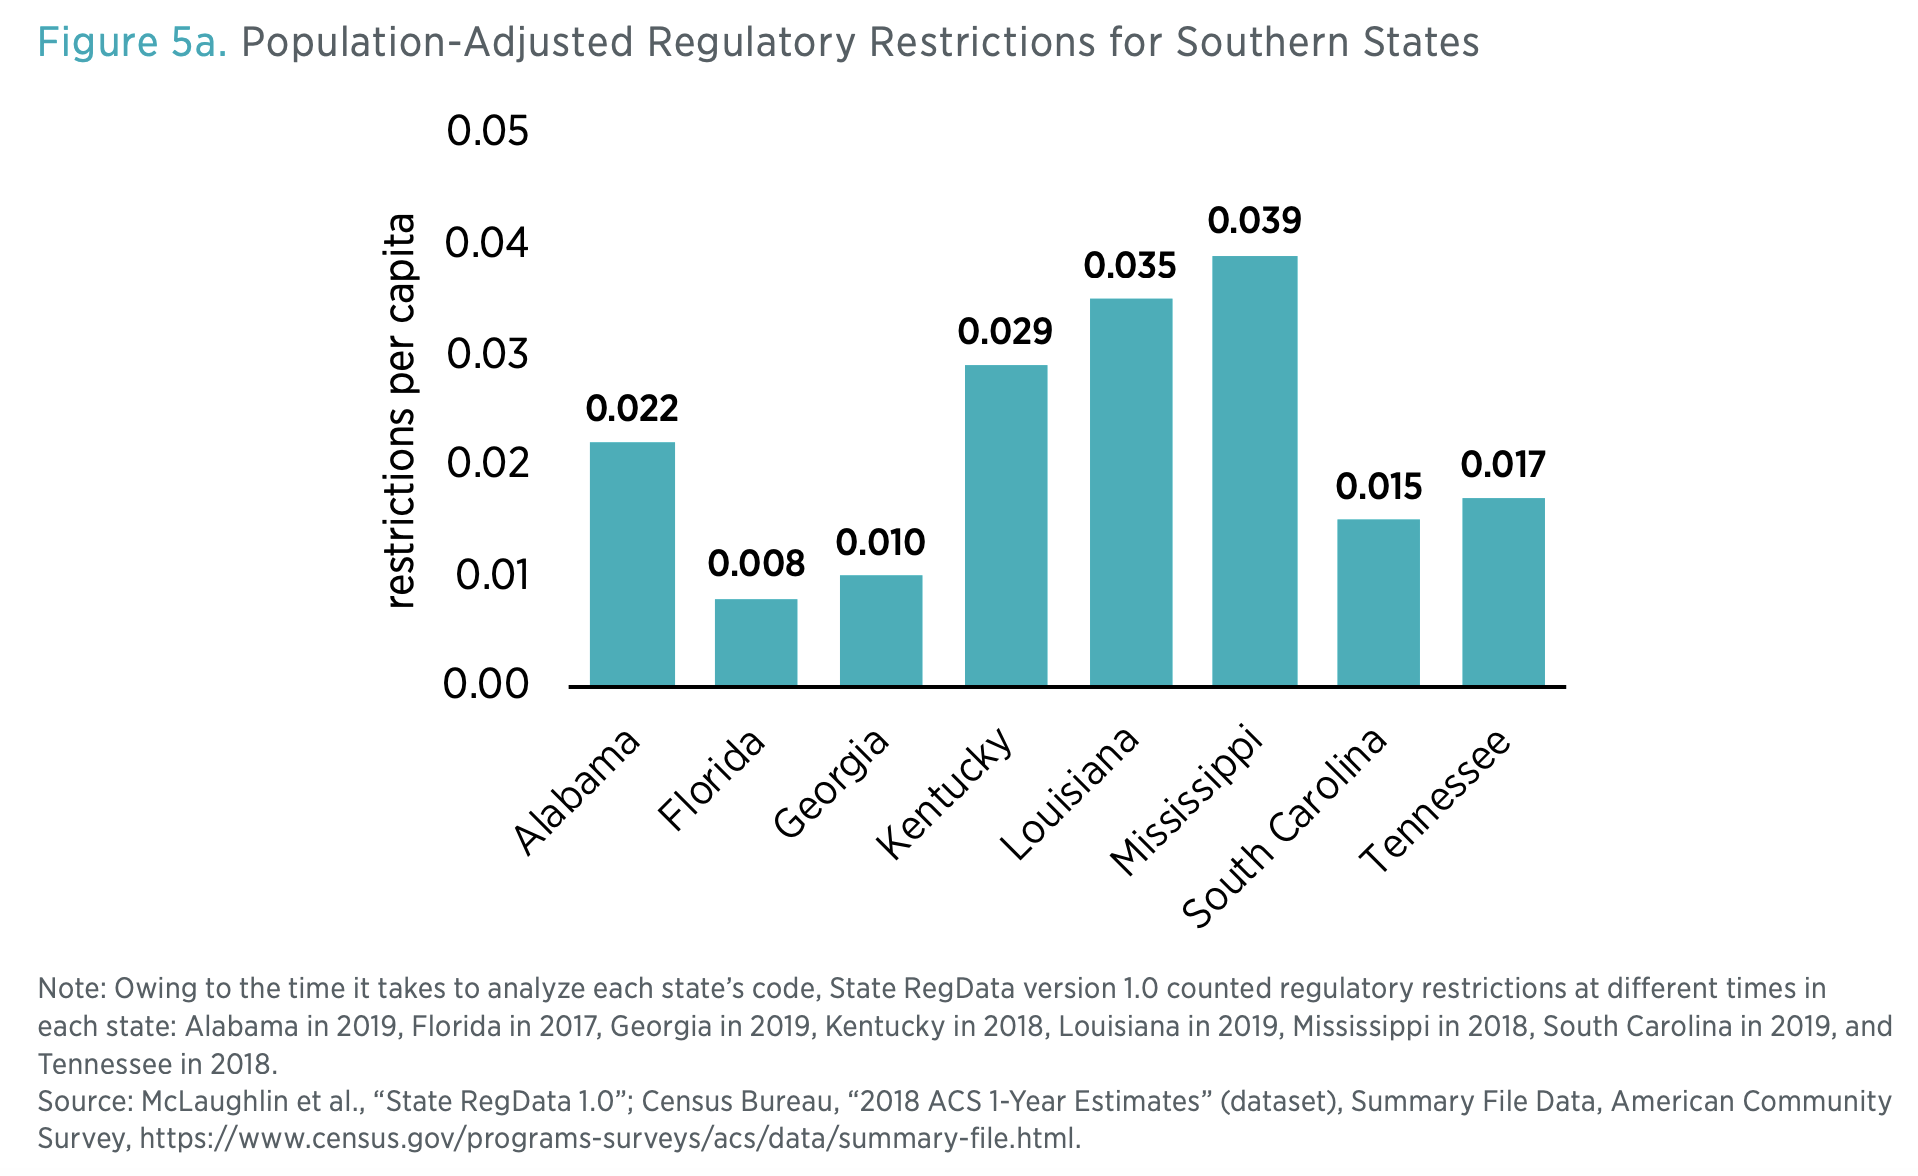 Figure 5a. Population-Adjusted Regulatory Restrictions for Southern States